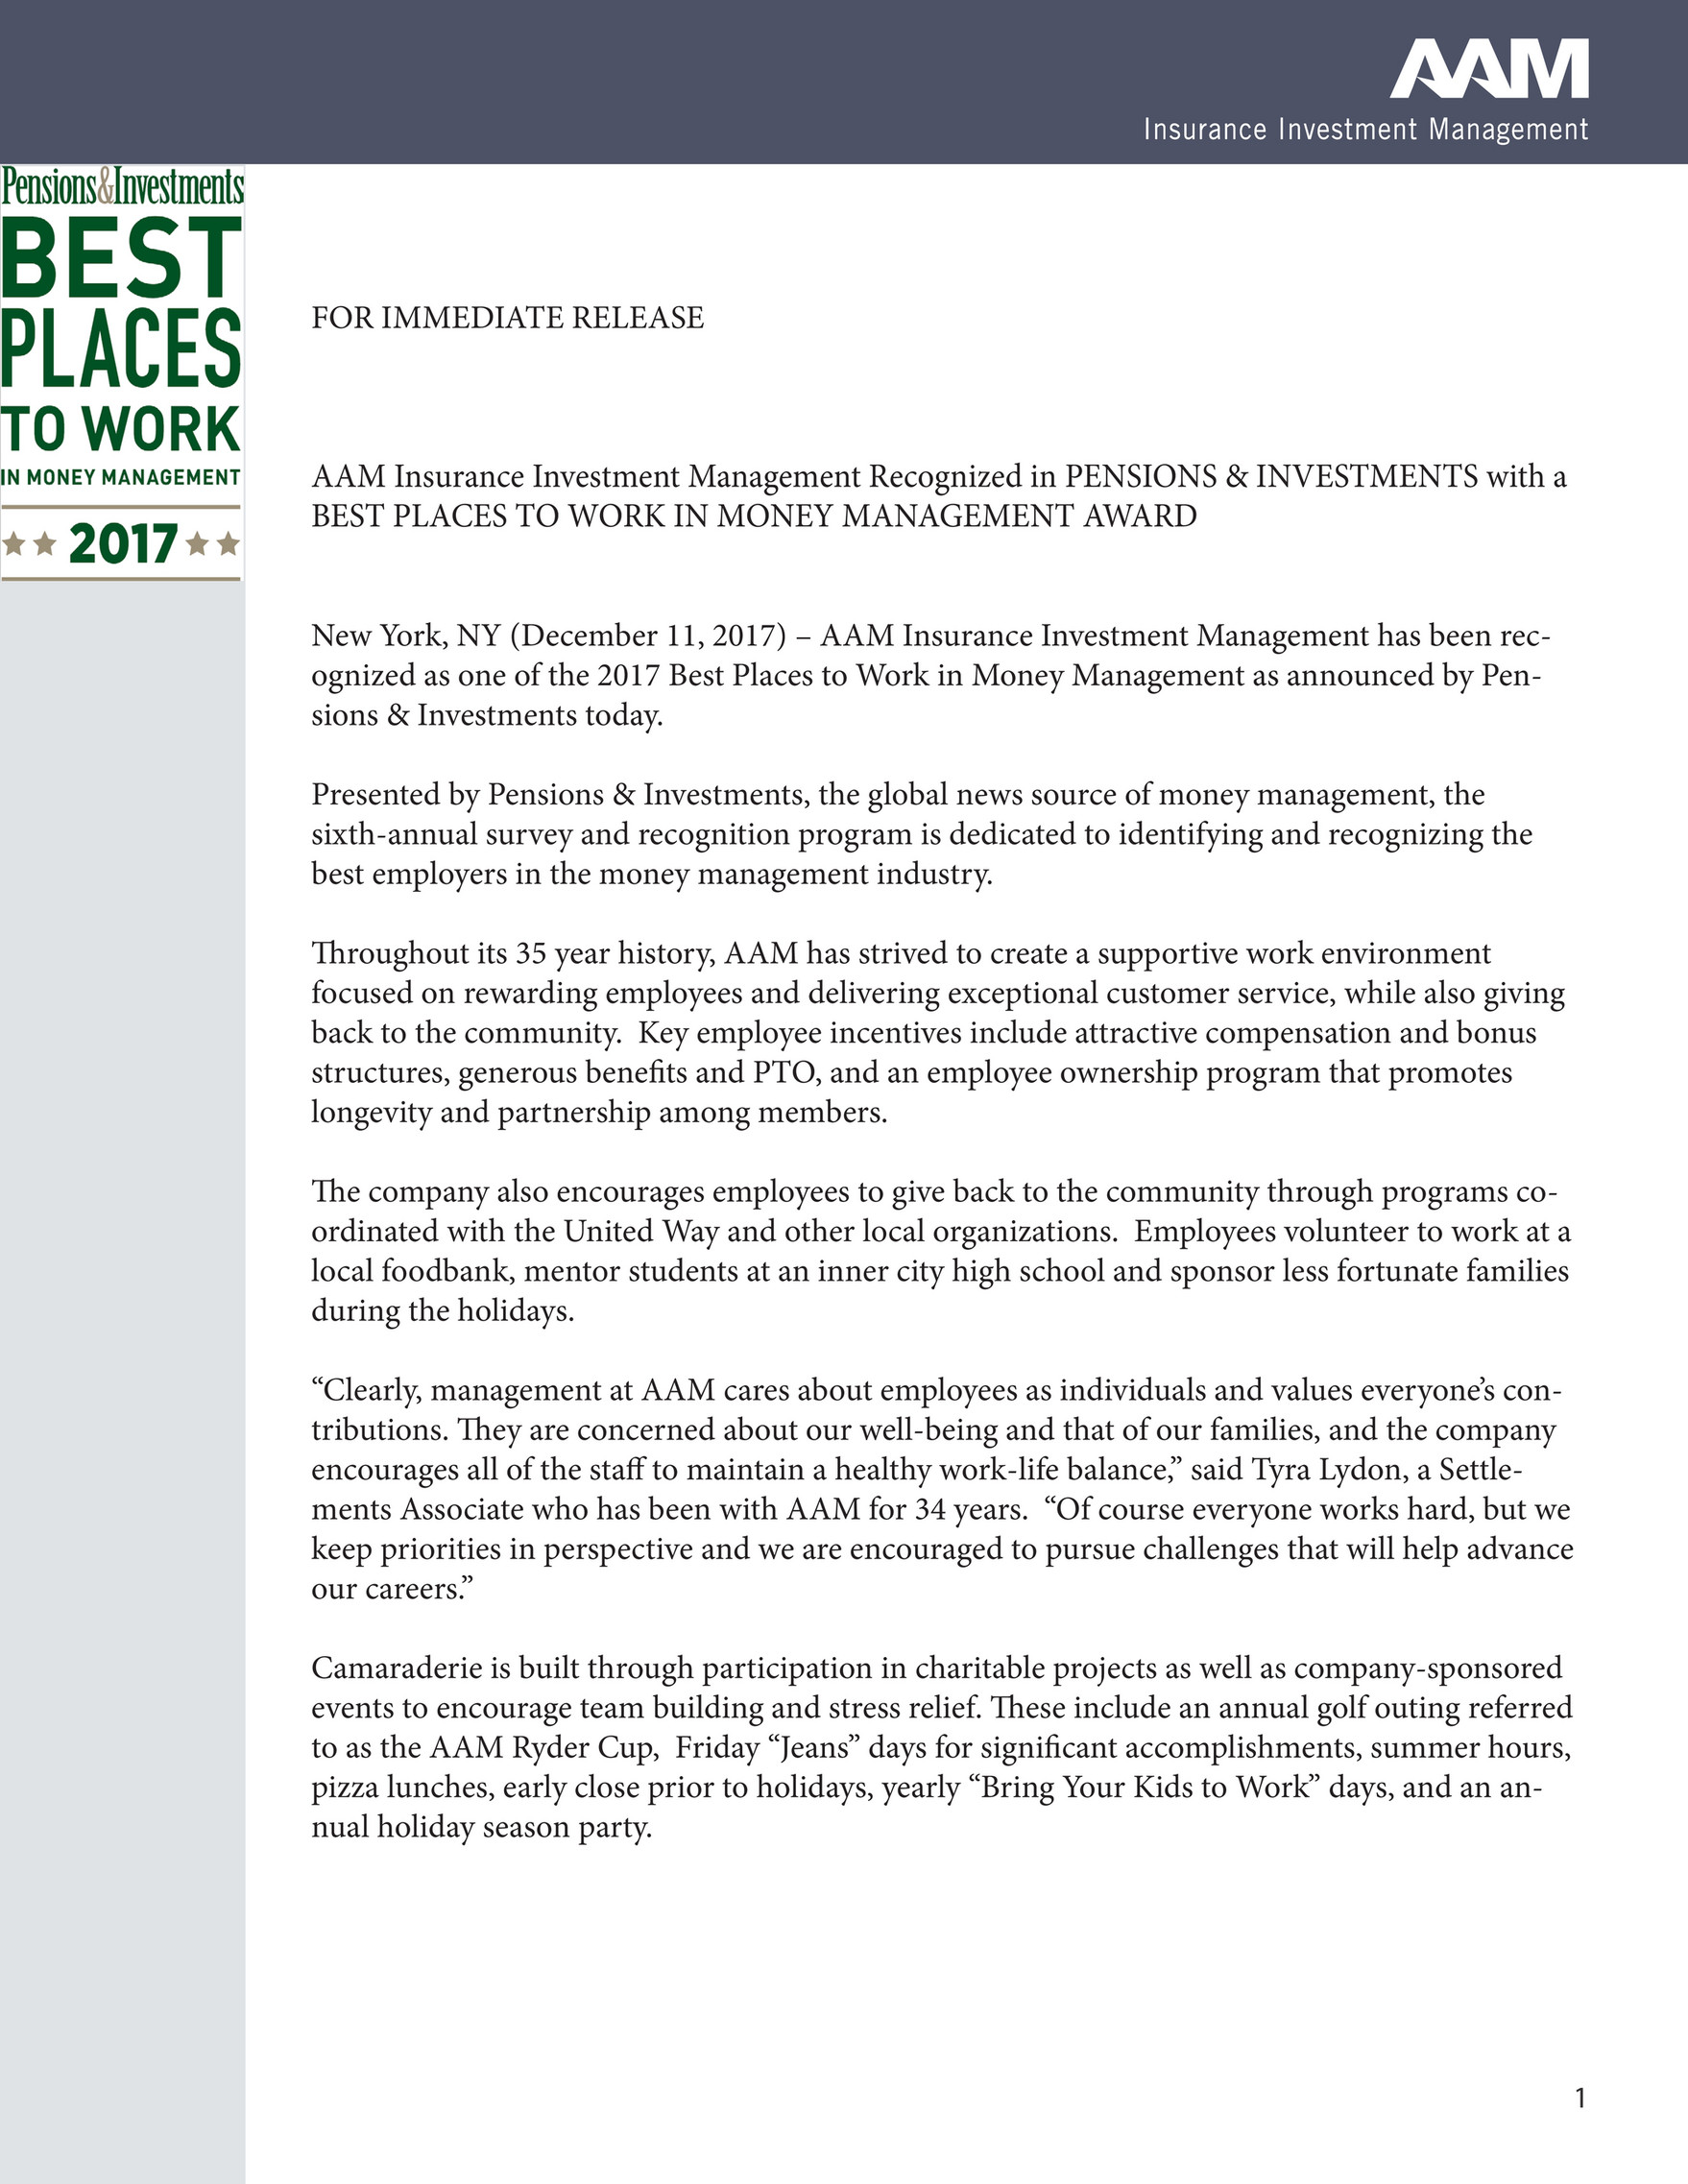 AAM-Insurance Investment Management - AAM Wins Best Place to Work in Money  Management - Page 1 - Created with Publitas.com